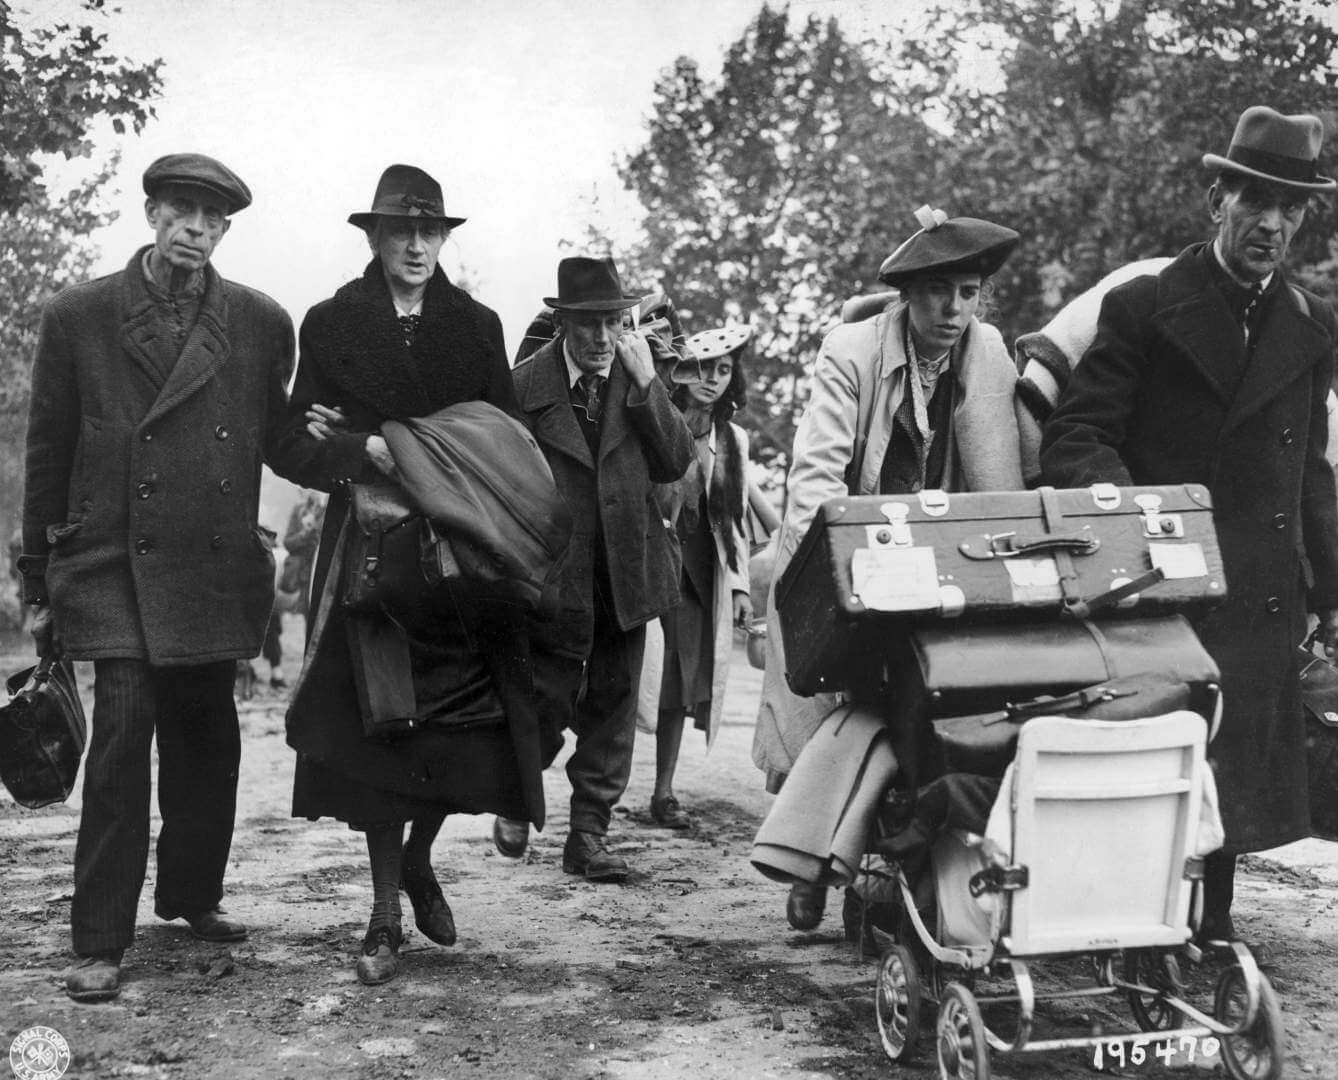 German civilian refugees walking through the streets of Aachen, Germany, on their way to a safer area away from the combat zone, 15th October 1944. (Photo by FPG/Hulton Archive/Getty Images)